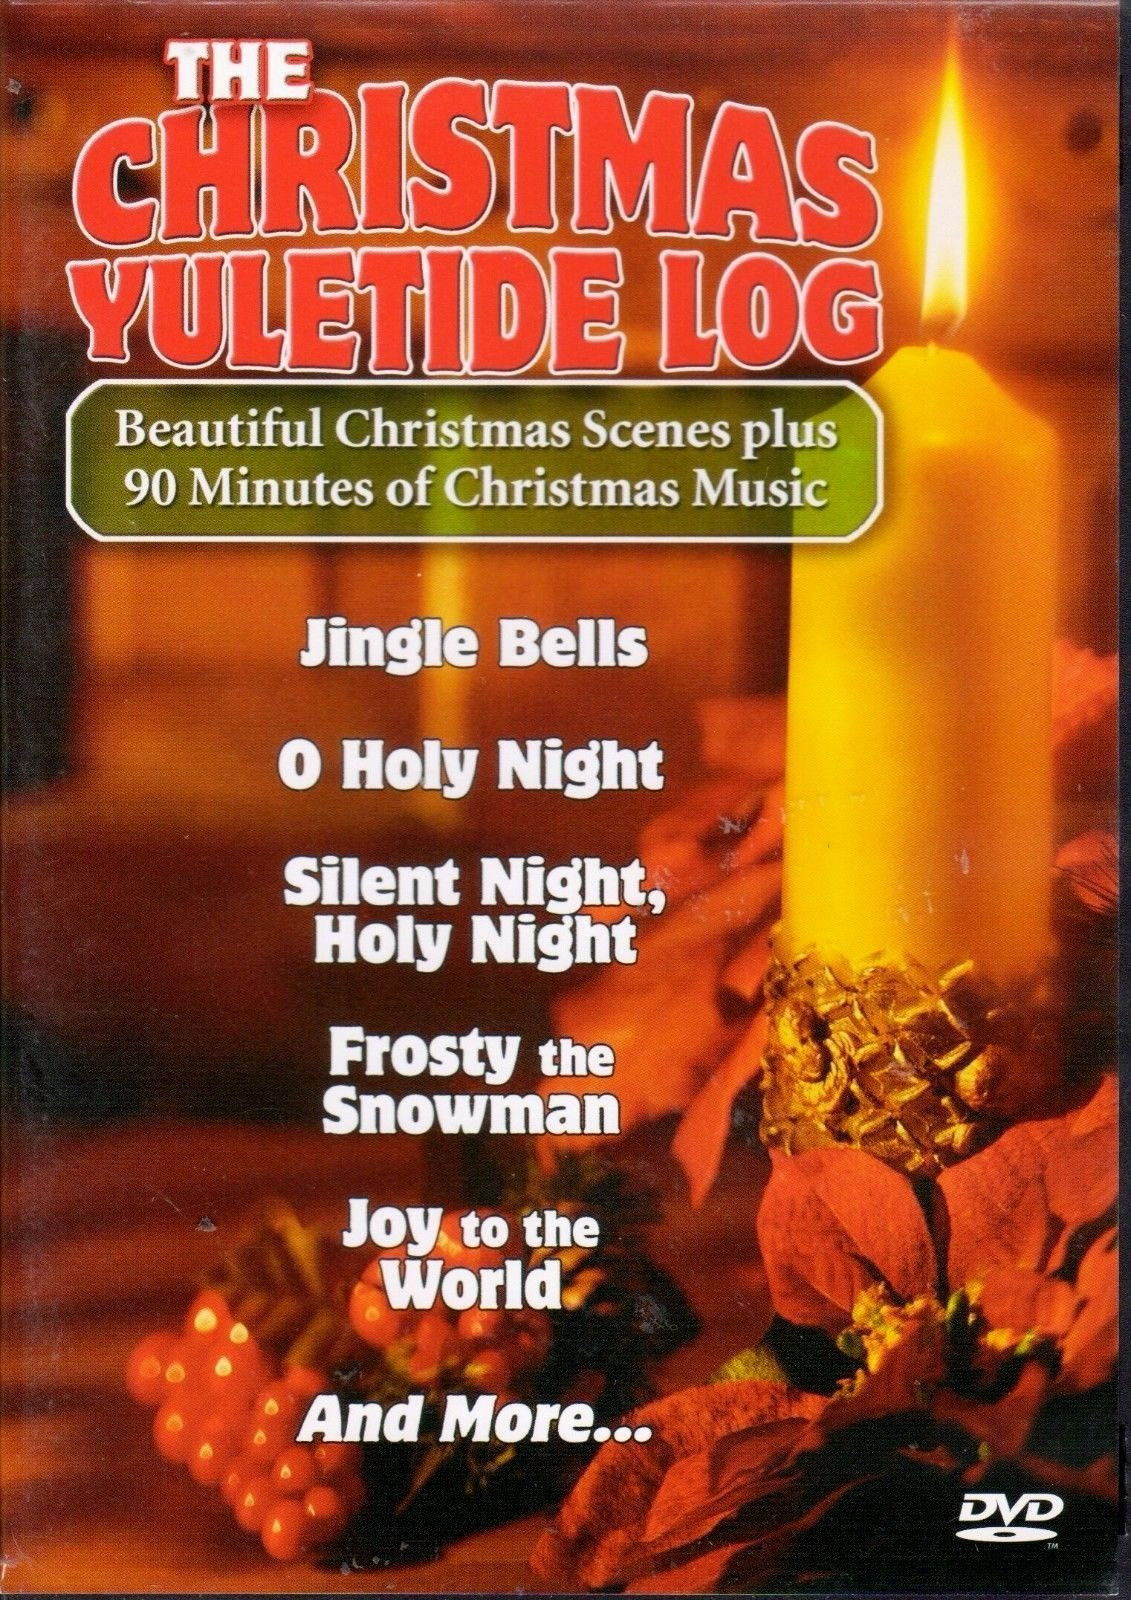 The Christmas Yuletide Log DVD